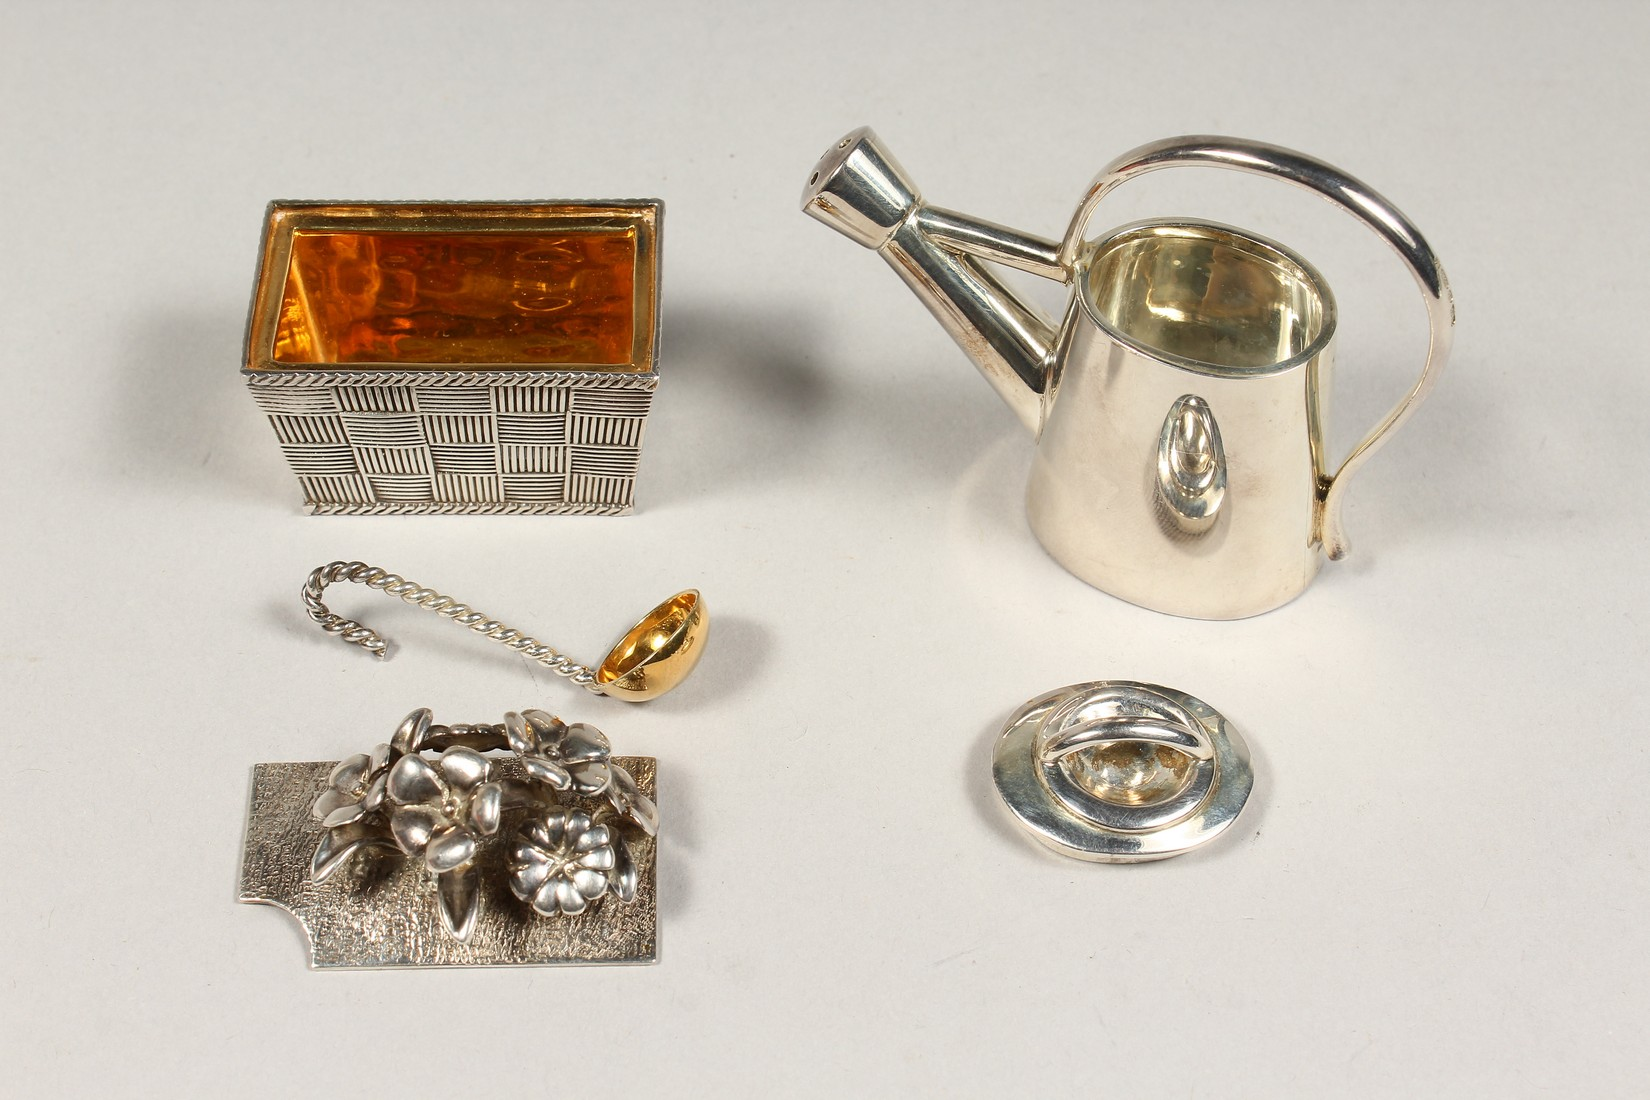 A THISTLE AND BEE SILVER BOX AND WATERING CAN - Image 2 of 5